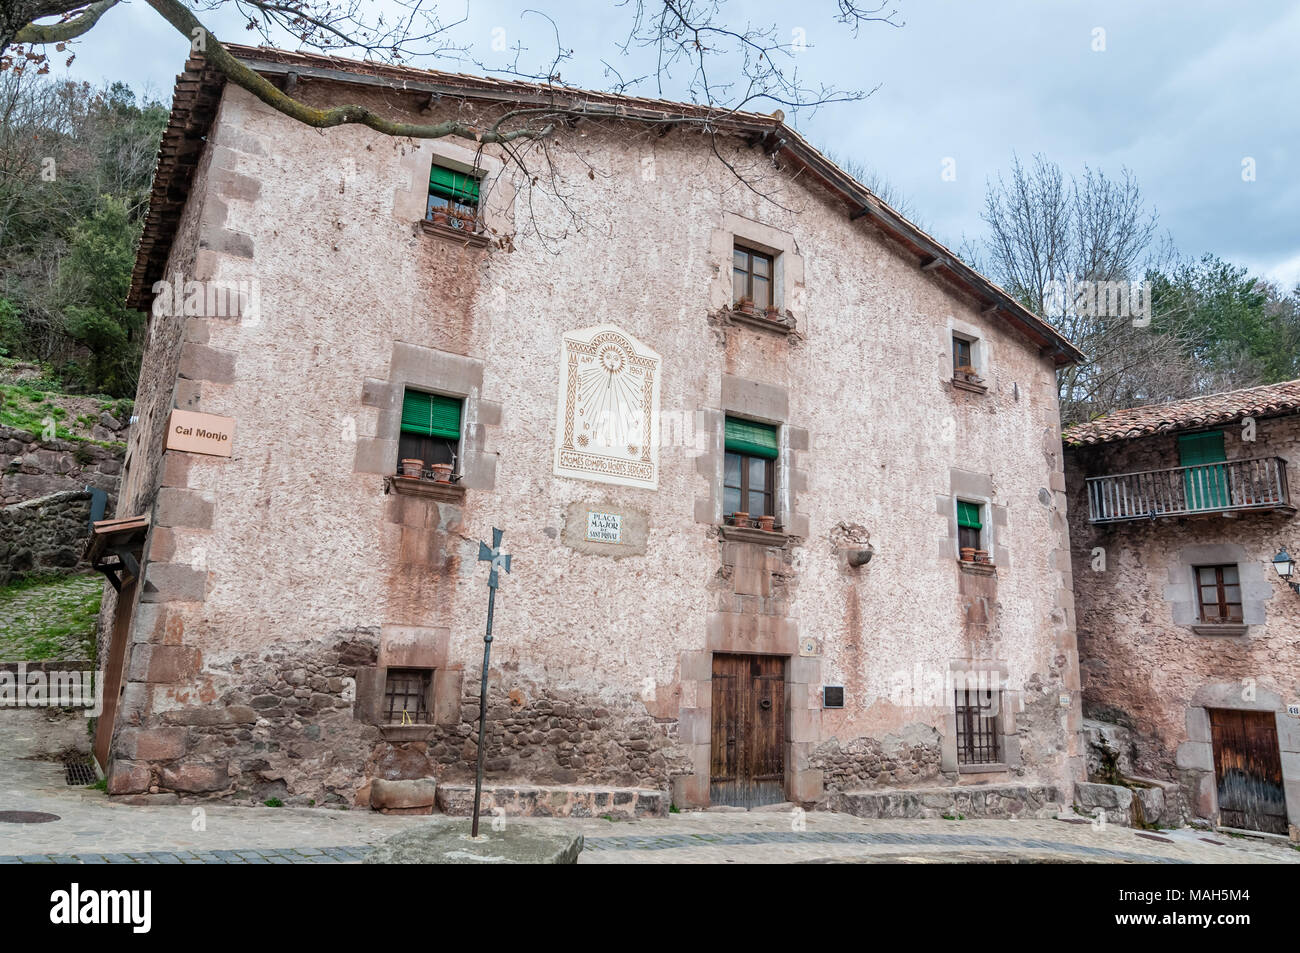 facade of an old house in the main square, sundial, Sant Privat, Garrotxa, Catalonia, Spain - Stock Image